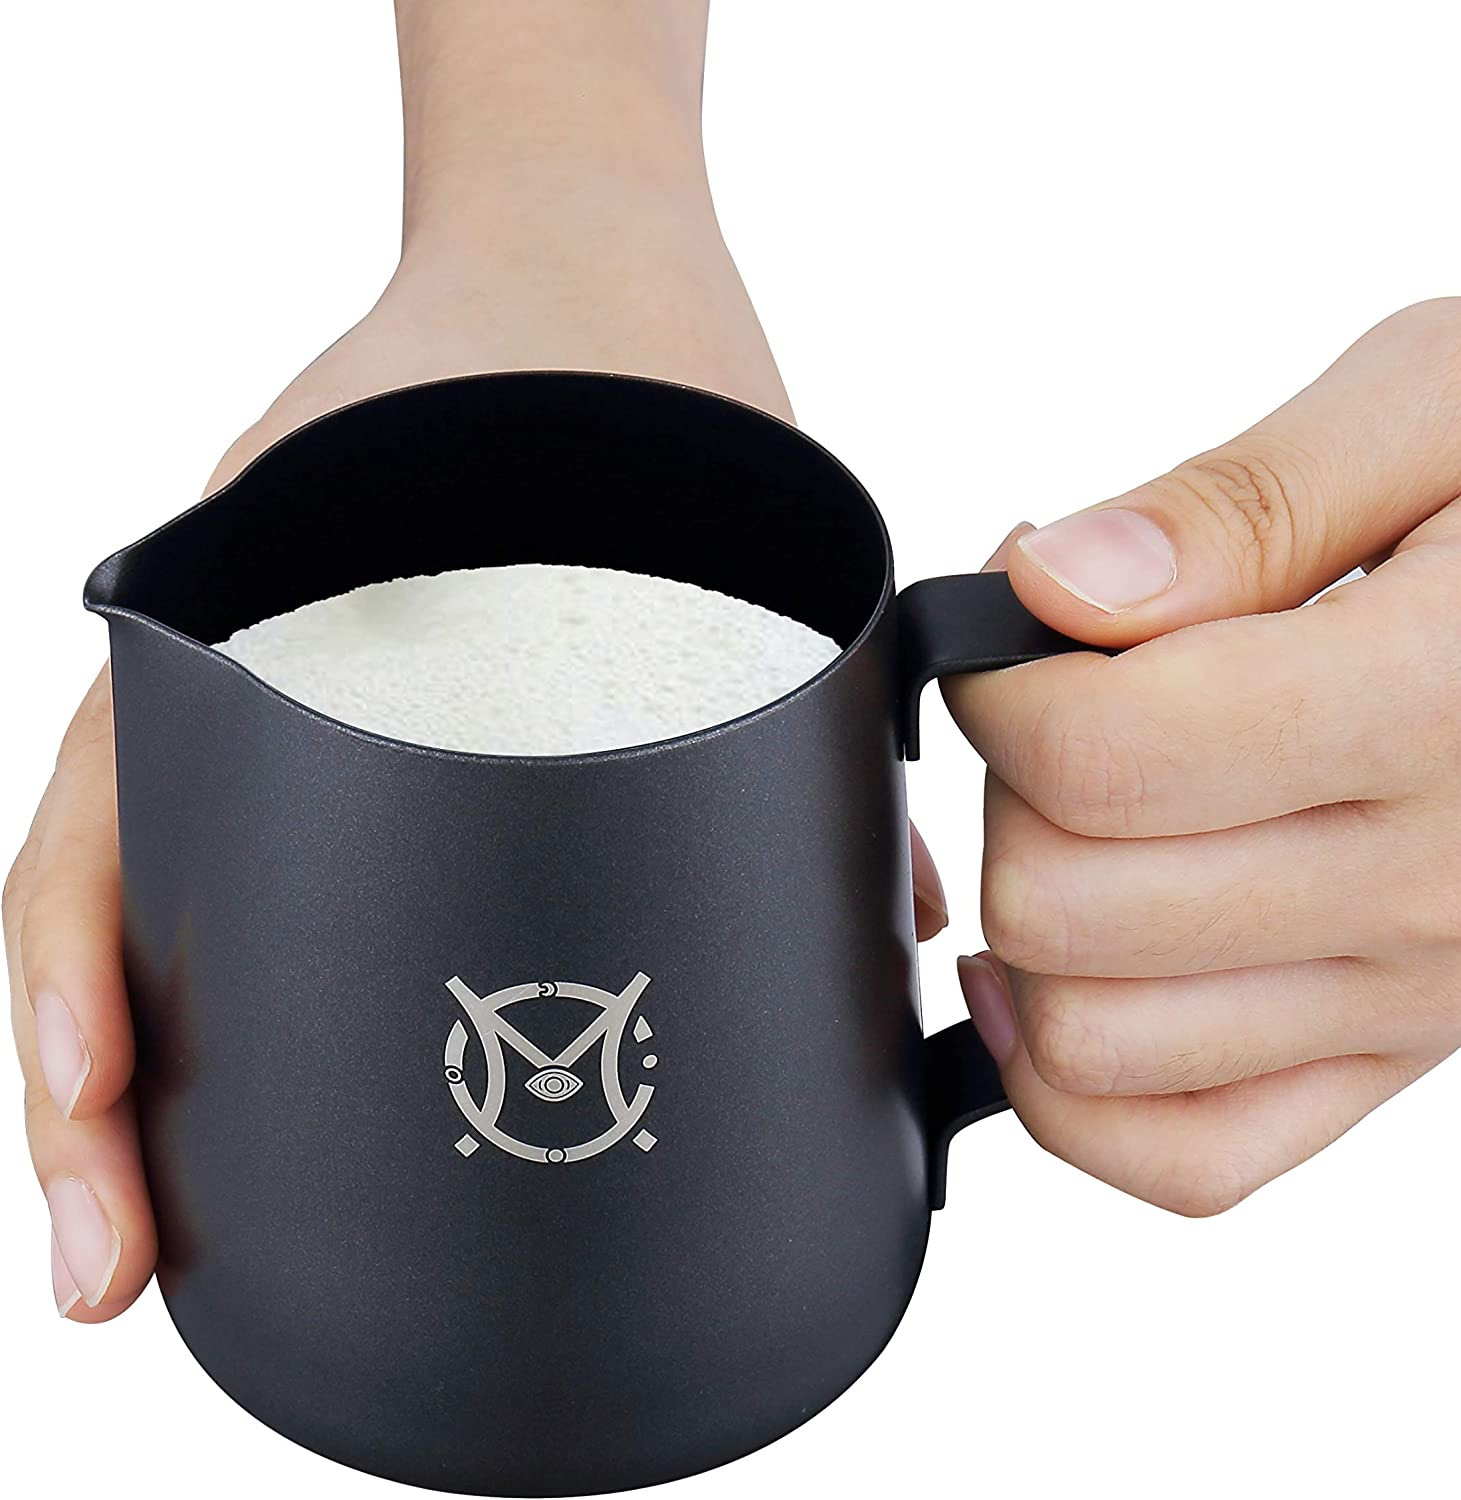 Non Stick Coating Latte Art Espresso Cappuccino Metal Milk Steaming Pitcher Black 20oz//600ml Magicaf/é Milk Frothing Frother Pitcher